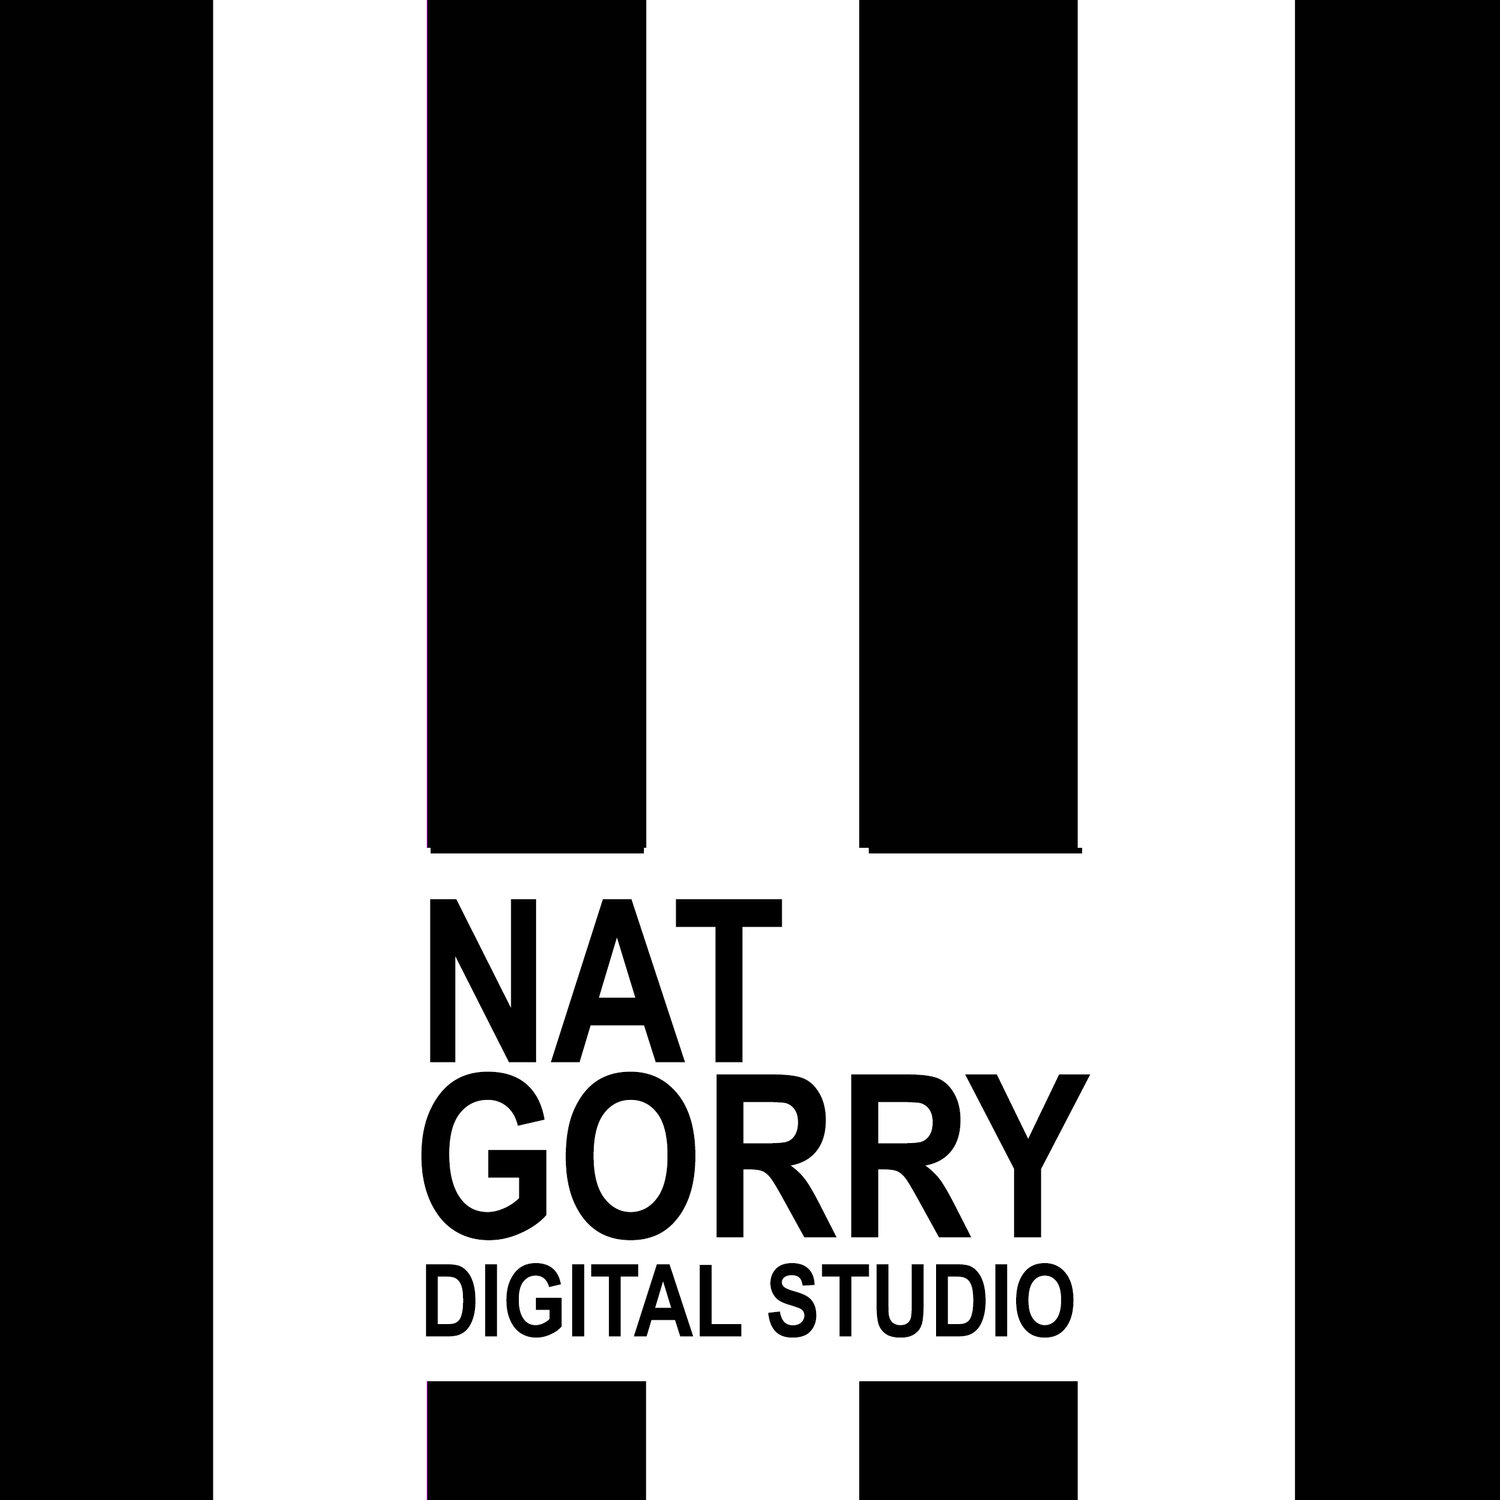 STUDIO NAT GORRY